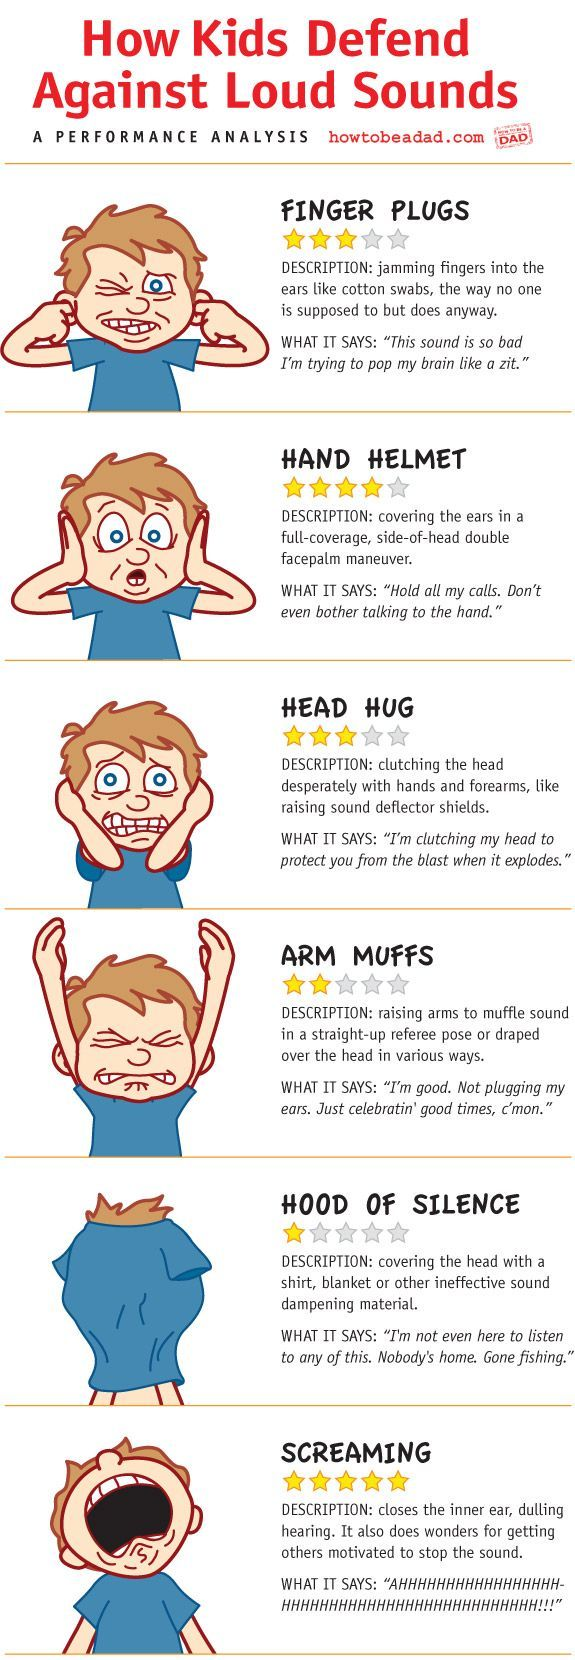 Noise sensitivity & ways children defend against loud & noises.